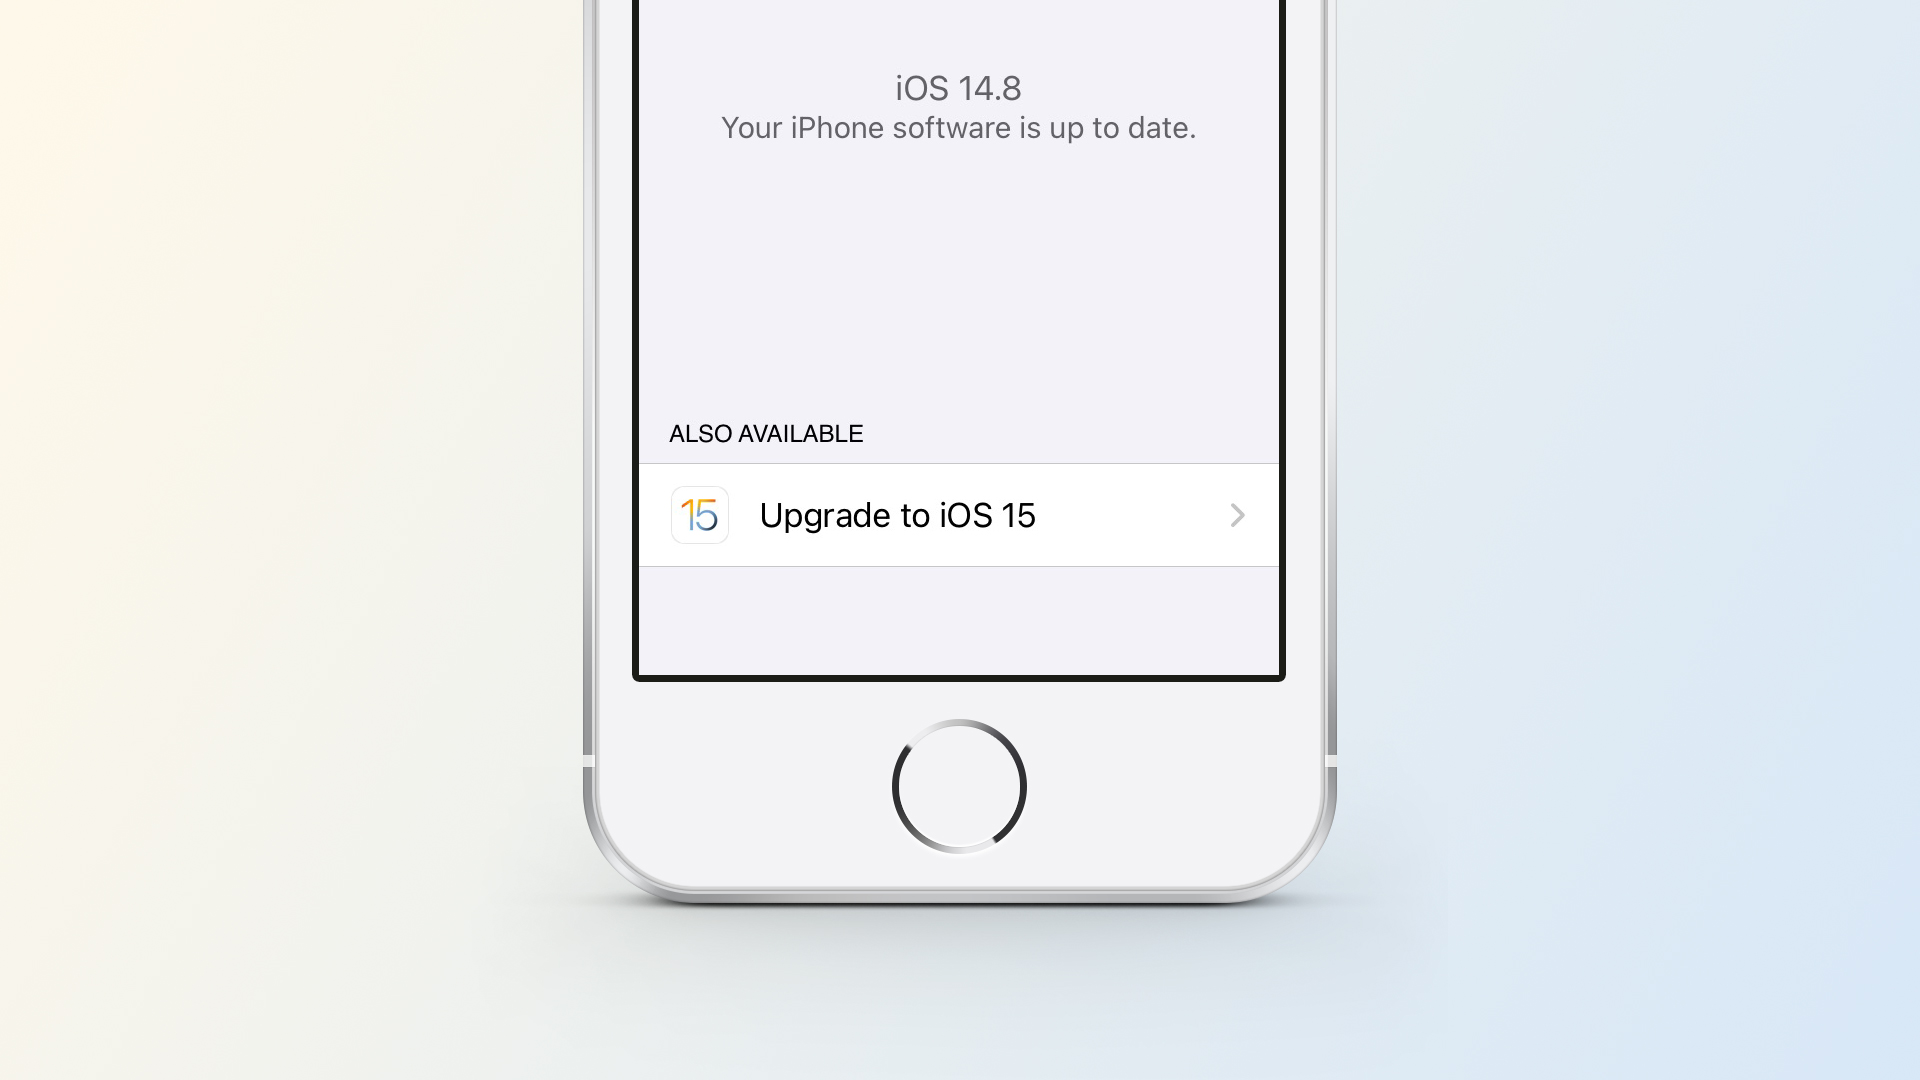 Not ready for iOS 15? Here's how to stay on iOS 14 and still receive security updates